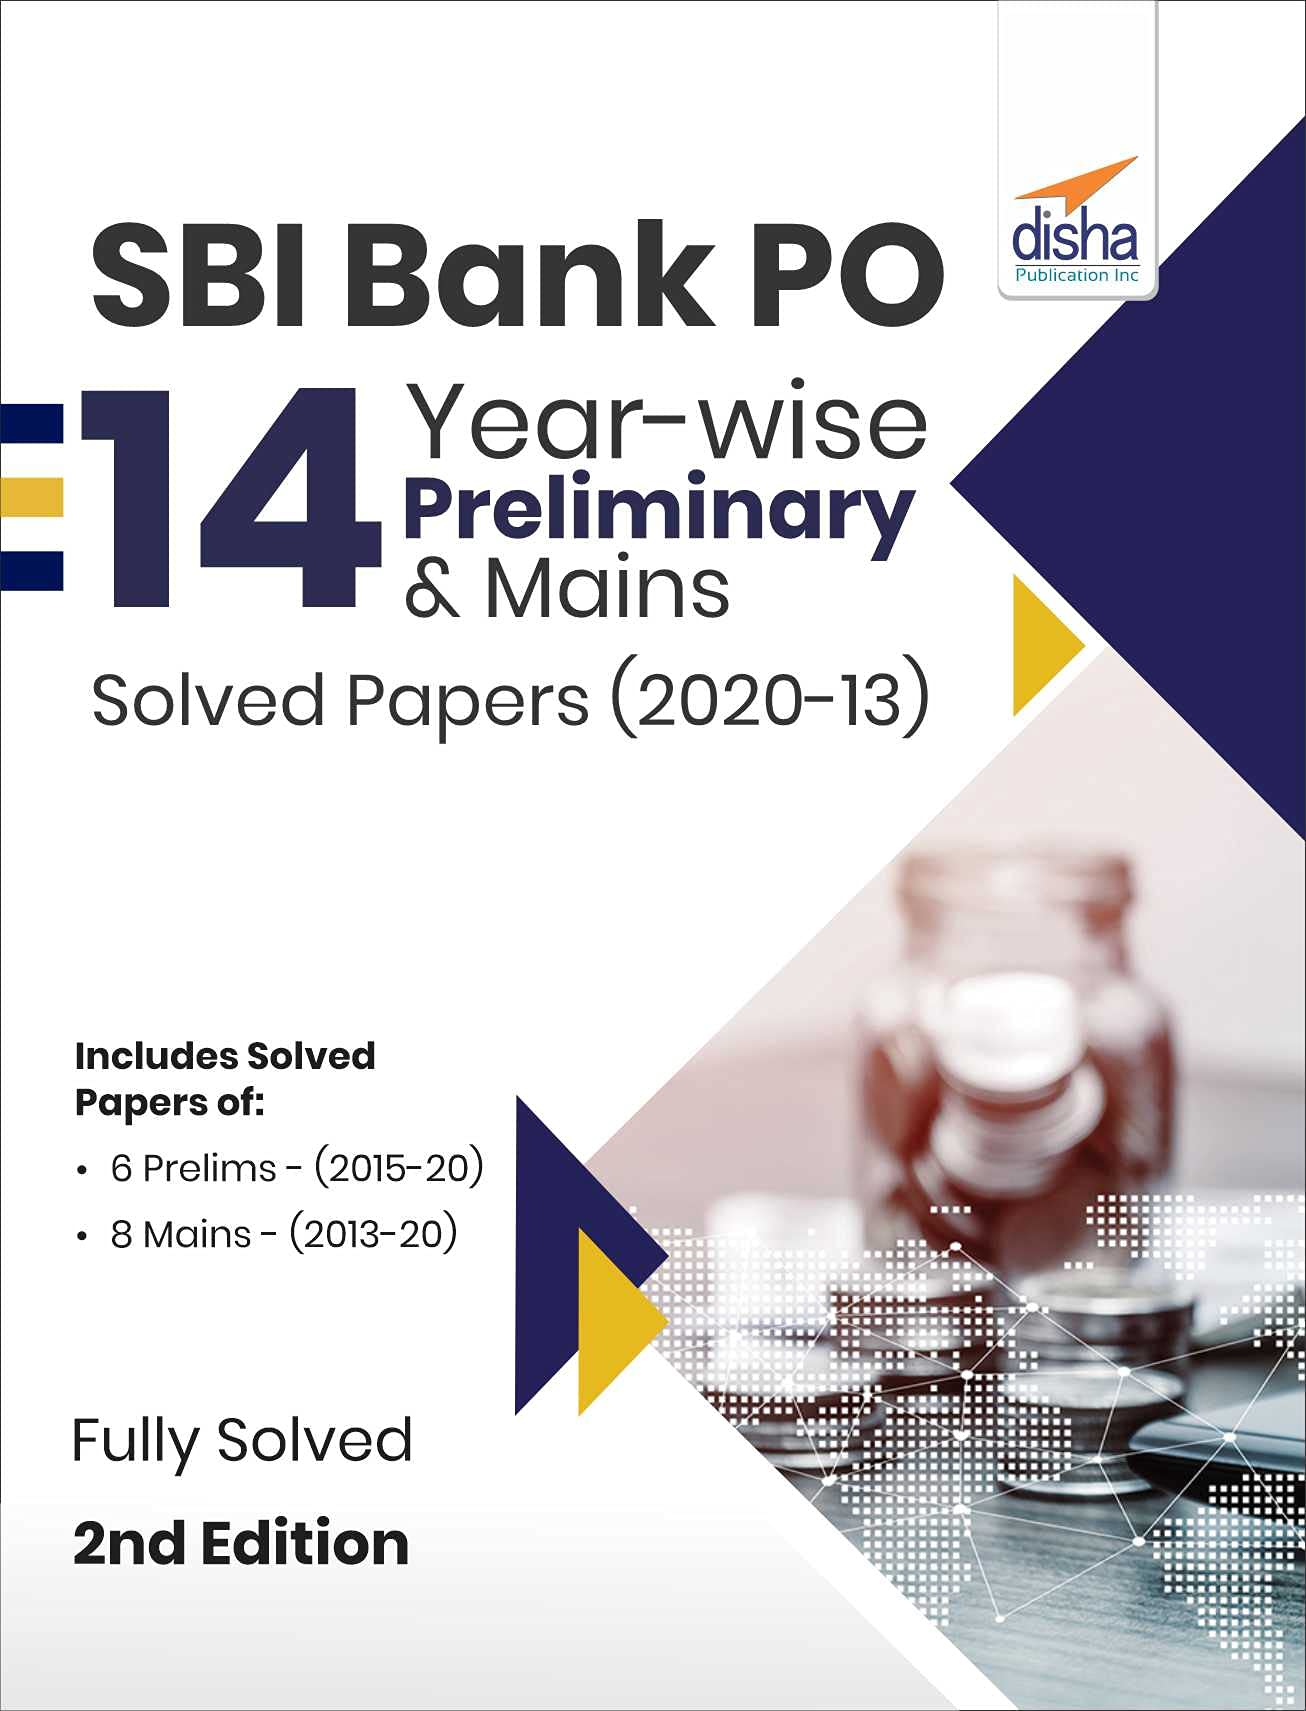 SBI Bank PO 14 Year-wise Preliminary & Mains Solved Papers (2020-13) 2nd Edition